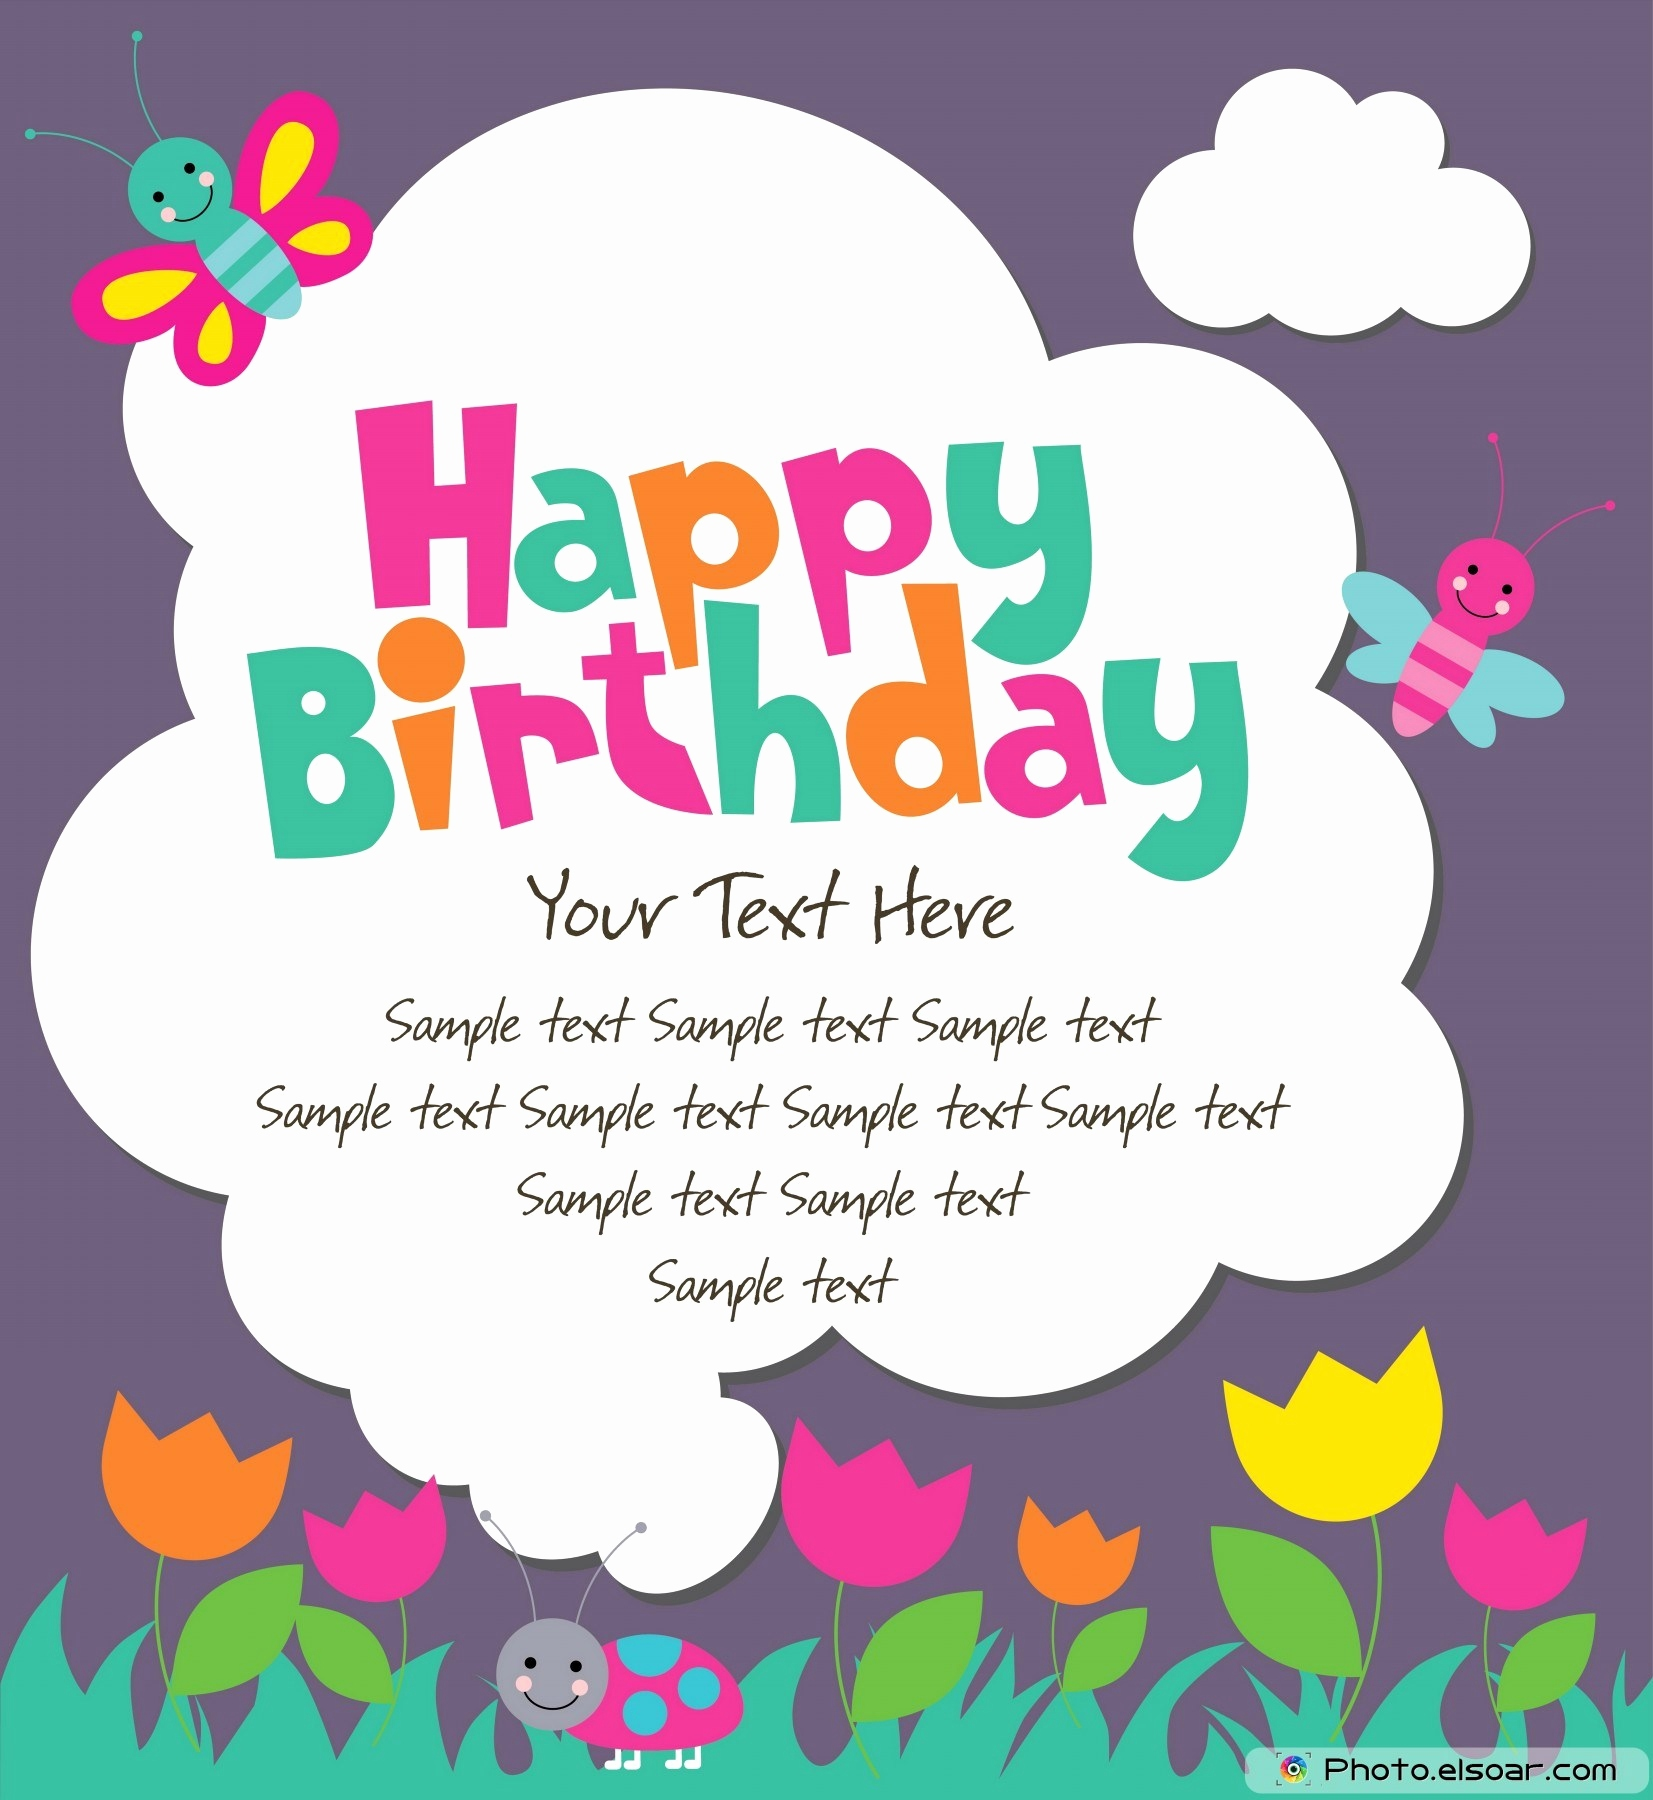 happy birthday photo card maker ; online-happy-birthday-card-with-name-edit-awesome-birthday-card-maker-free-gangcraft-of-online-happy-birthday-card-with-name-edit